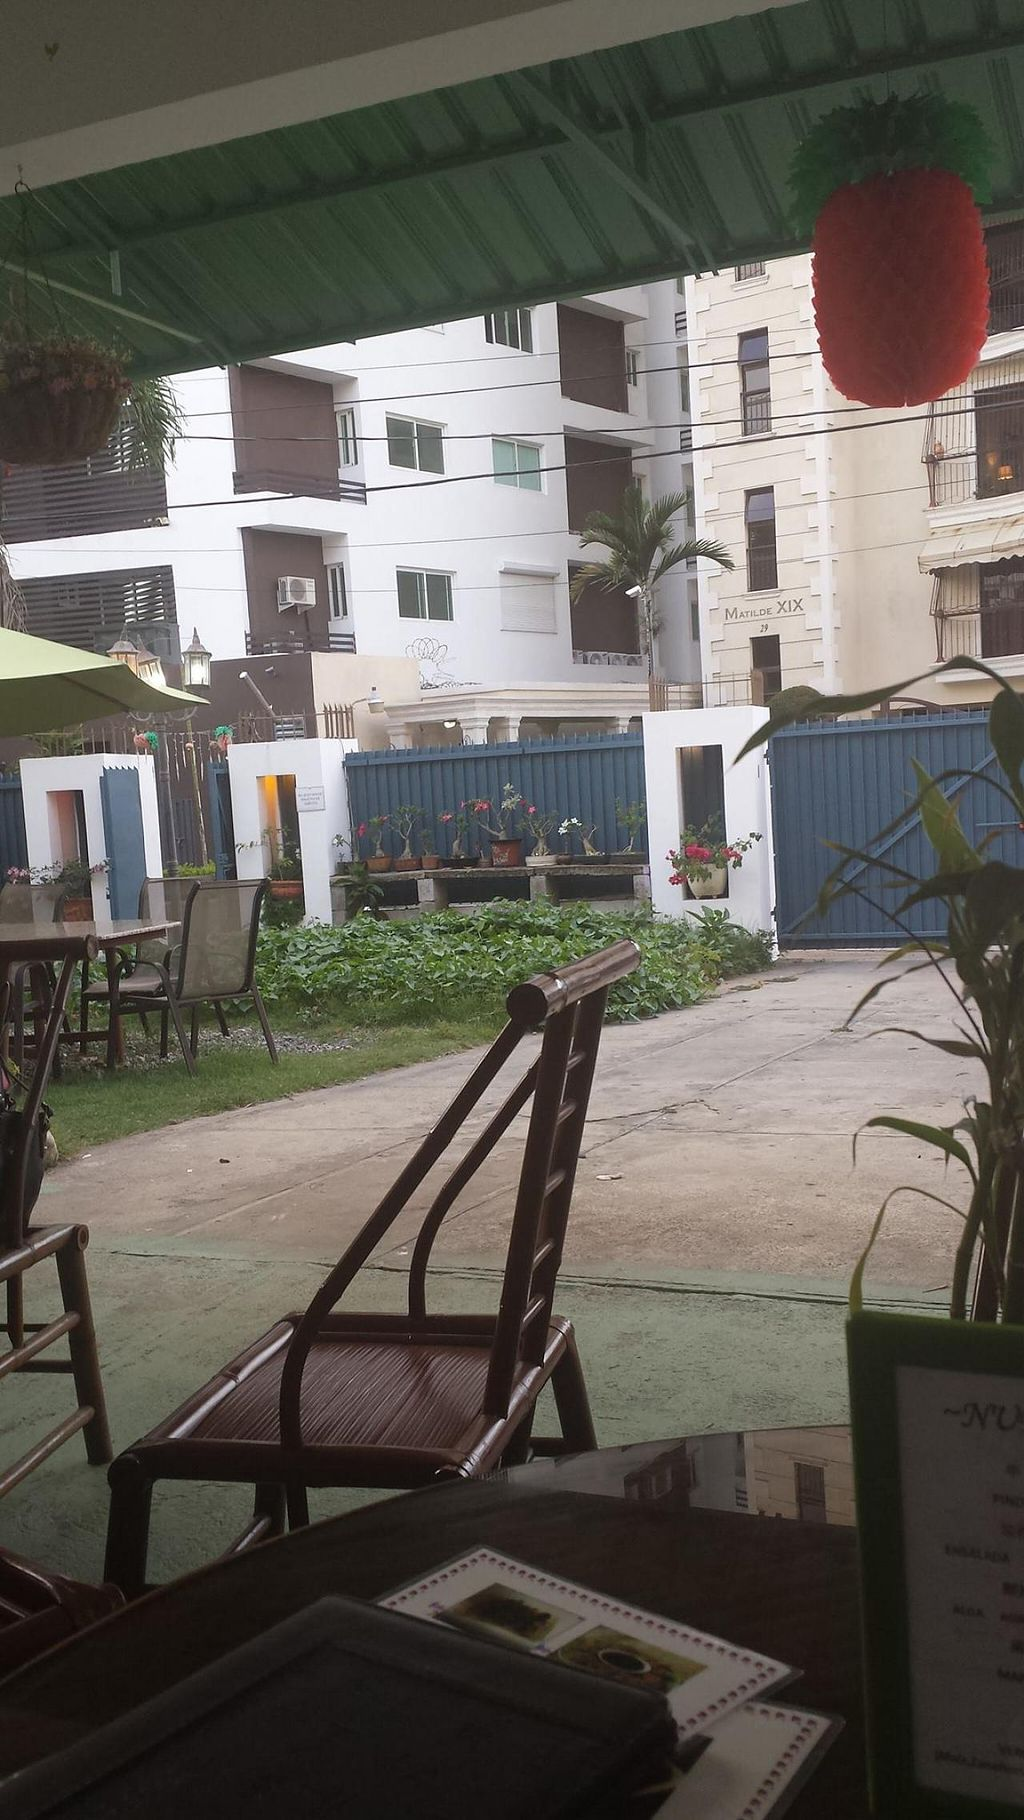 """Photo of Jardin Verde  by <a href=""""/members/profile/vegansoul"""">vegansoul</a> <br/>View of garden from the tables <br/> June 7, 2014  - <a href='/contact/abuse/image/31149/71580'>Report</a>"""